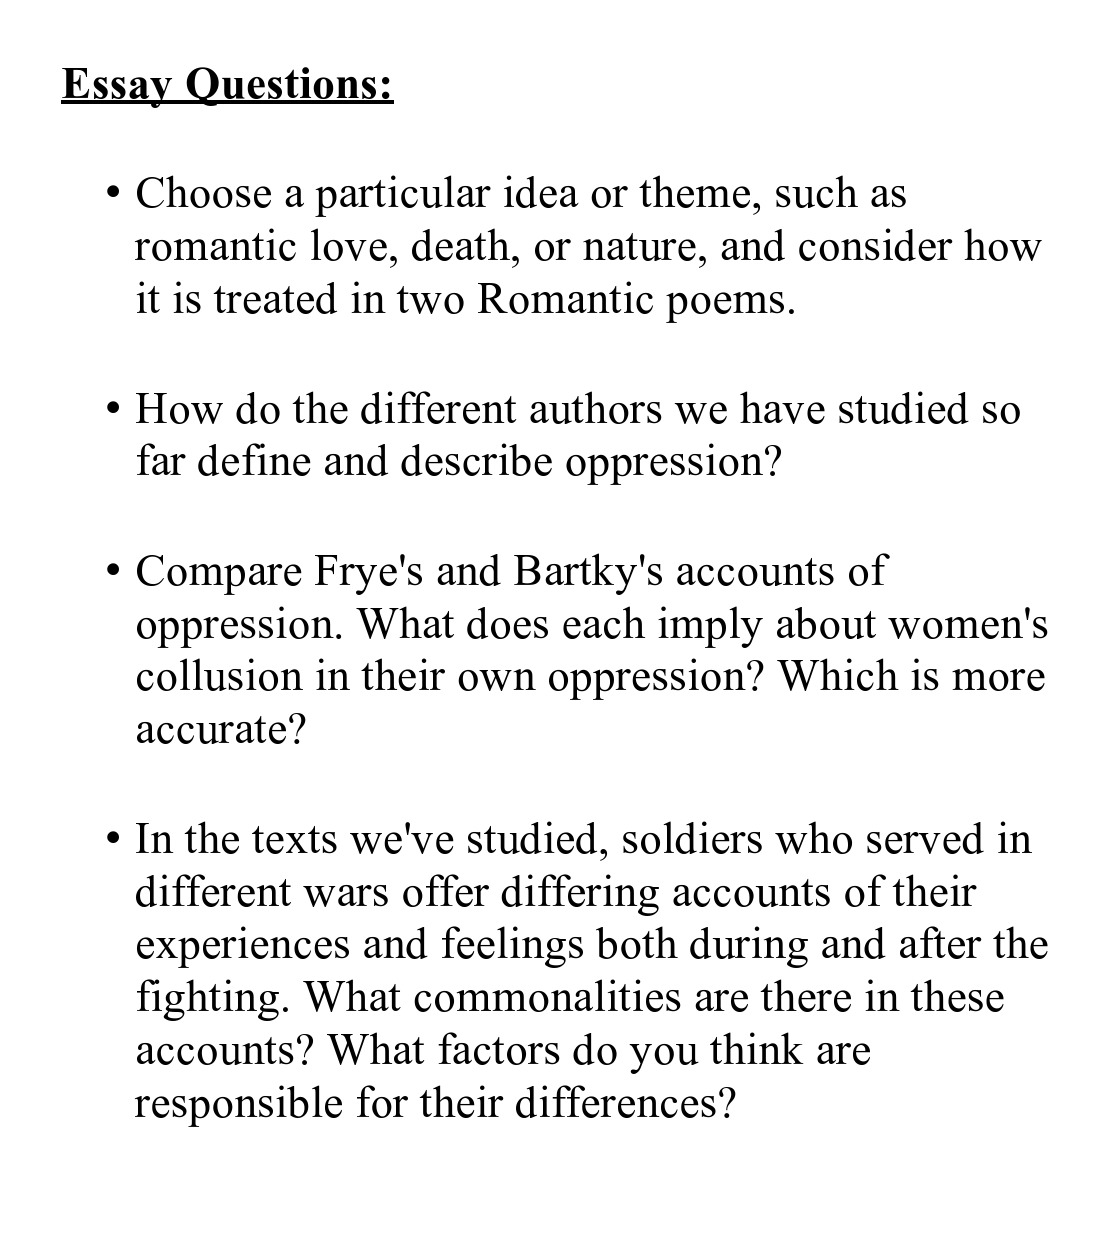 007 How To Write Short Essay Questions Surprising A Response Answer Question In Apa Format Full